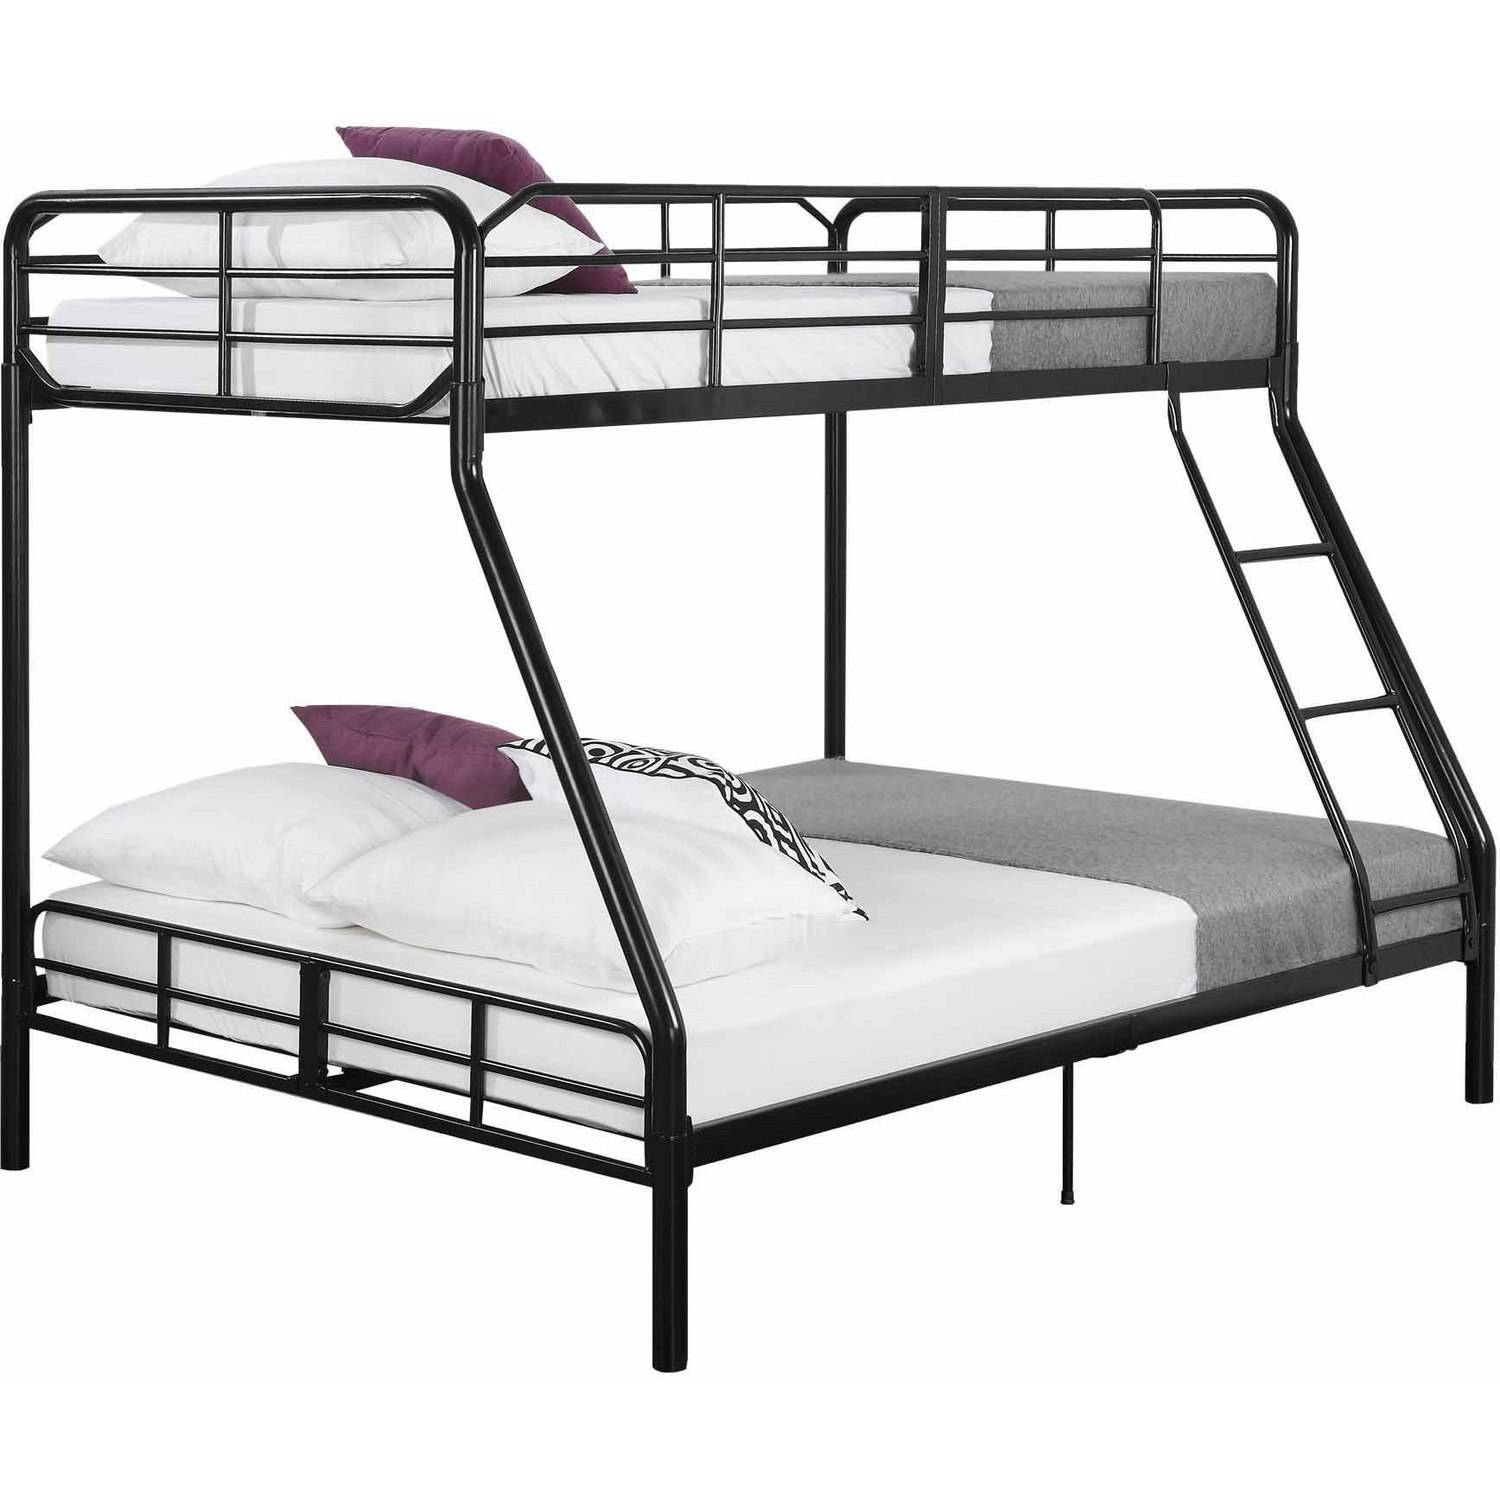 New Mainstays Twin Over Full Bunk Bed